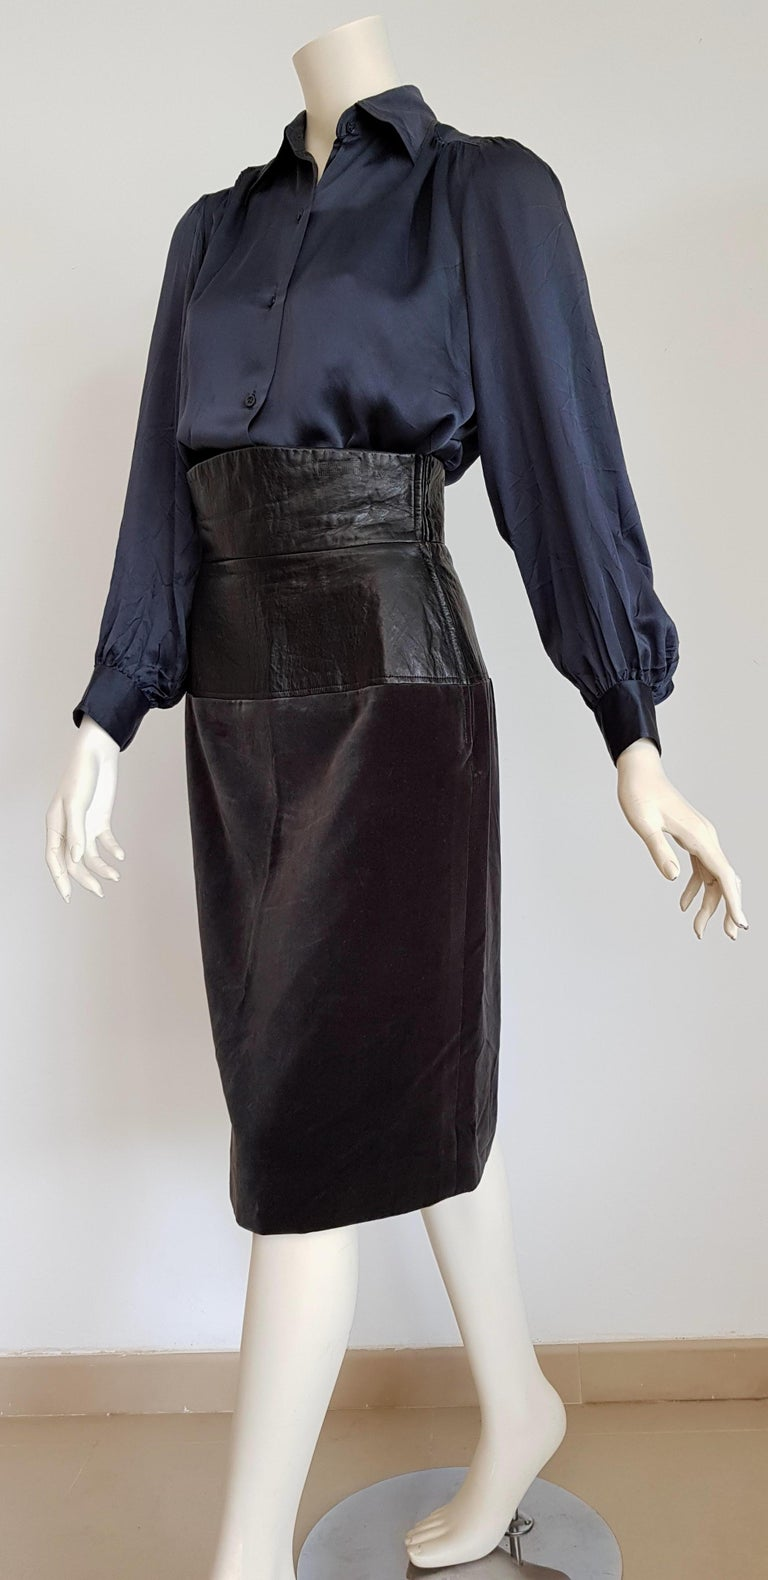 Yves SAINT LAURENT Silk Blue Tone Shirt and Leather Velvet Anthracite Grey Skirt Ensemble - Unworn, New. .. SIZE: equivalent to about Small / Medium, please review approx measurements as follows in cm.  SHIRT: lenght 73, chest underarm to underarm